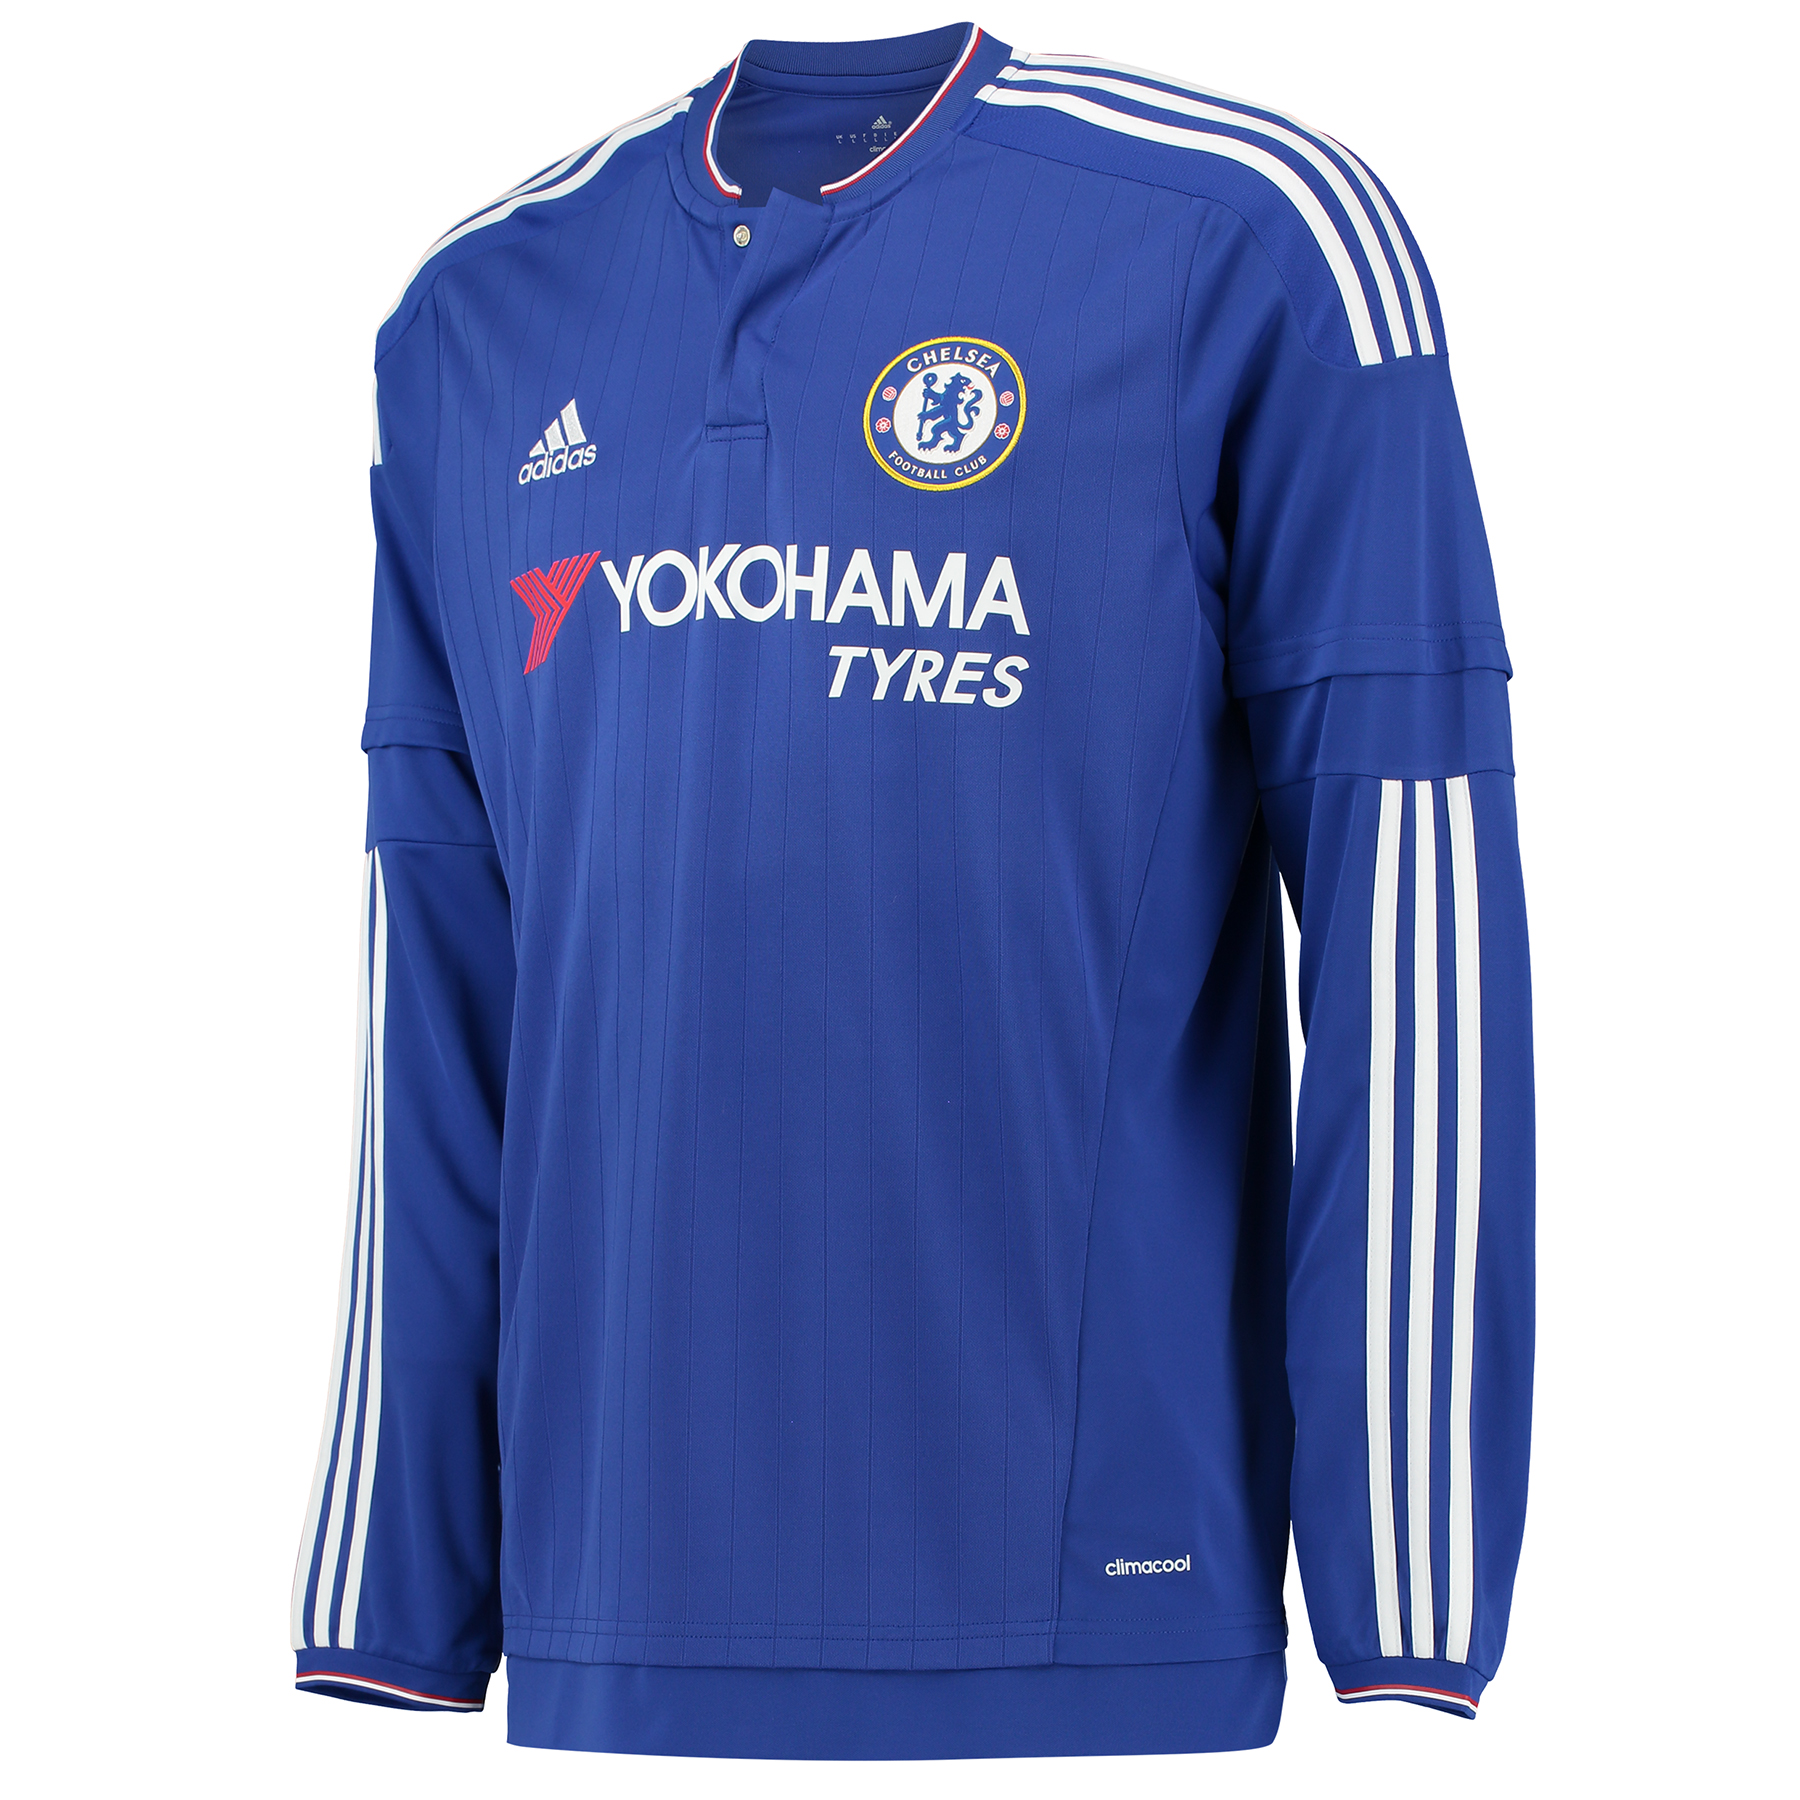 Chelsea Home Shirt 2015/16 - Long Sleeve Show your support for your favourite club with the new 2015/16 Chelsea home shirt. The Blues have the speed and control that make goals. This men's football jersey is a version of the one Chelsea wear when they're putting points on the board during home matches. This short sleeve shirt features climacool® ventilation and their team badge on the chest. Join the likes of Diego Costa, Cesc Fabregas and Eden Hazard and order your new Chelsea shirt today! Benefits: Engineered fabric on front CLIMACOOL® Provides heat and moisture management through ventilation Regular Fit Club crest: woven badge 100% Polyester